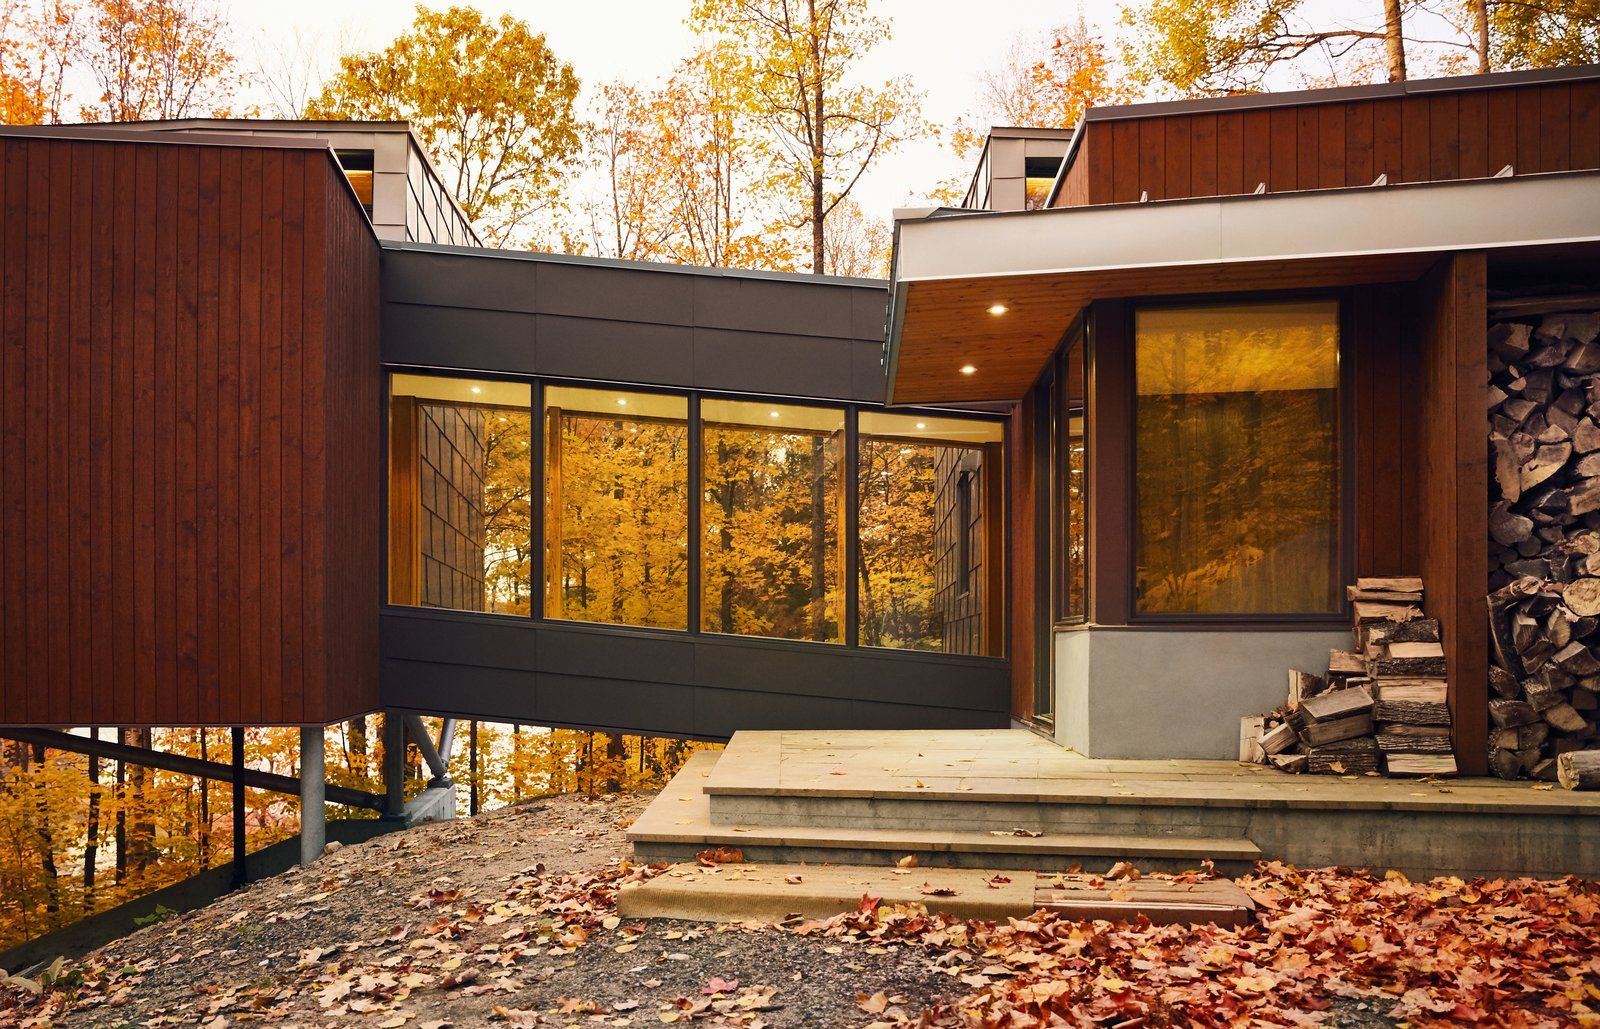 Set on a steel frame and reached by a bridge, the master suite extends up to 13 feet above the sloping grade.